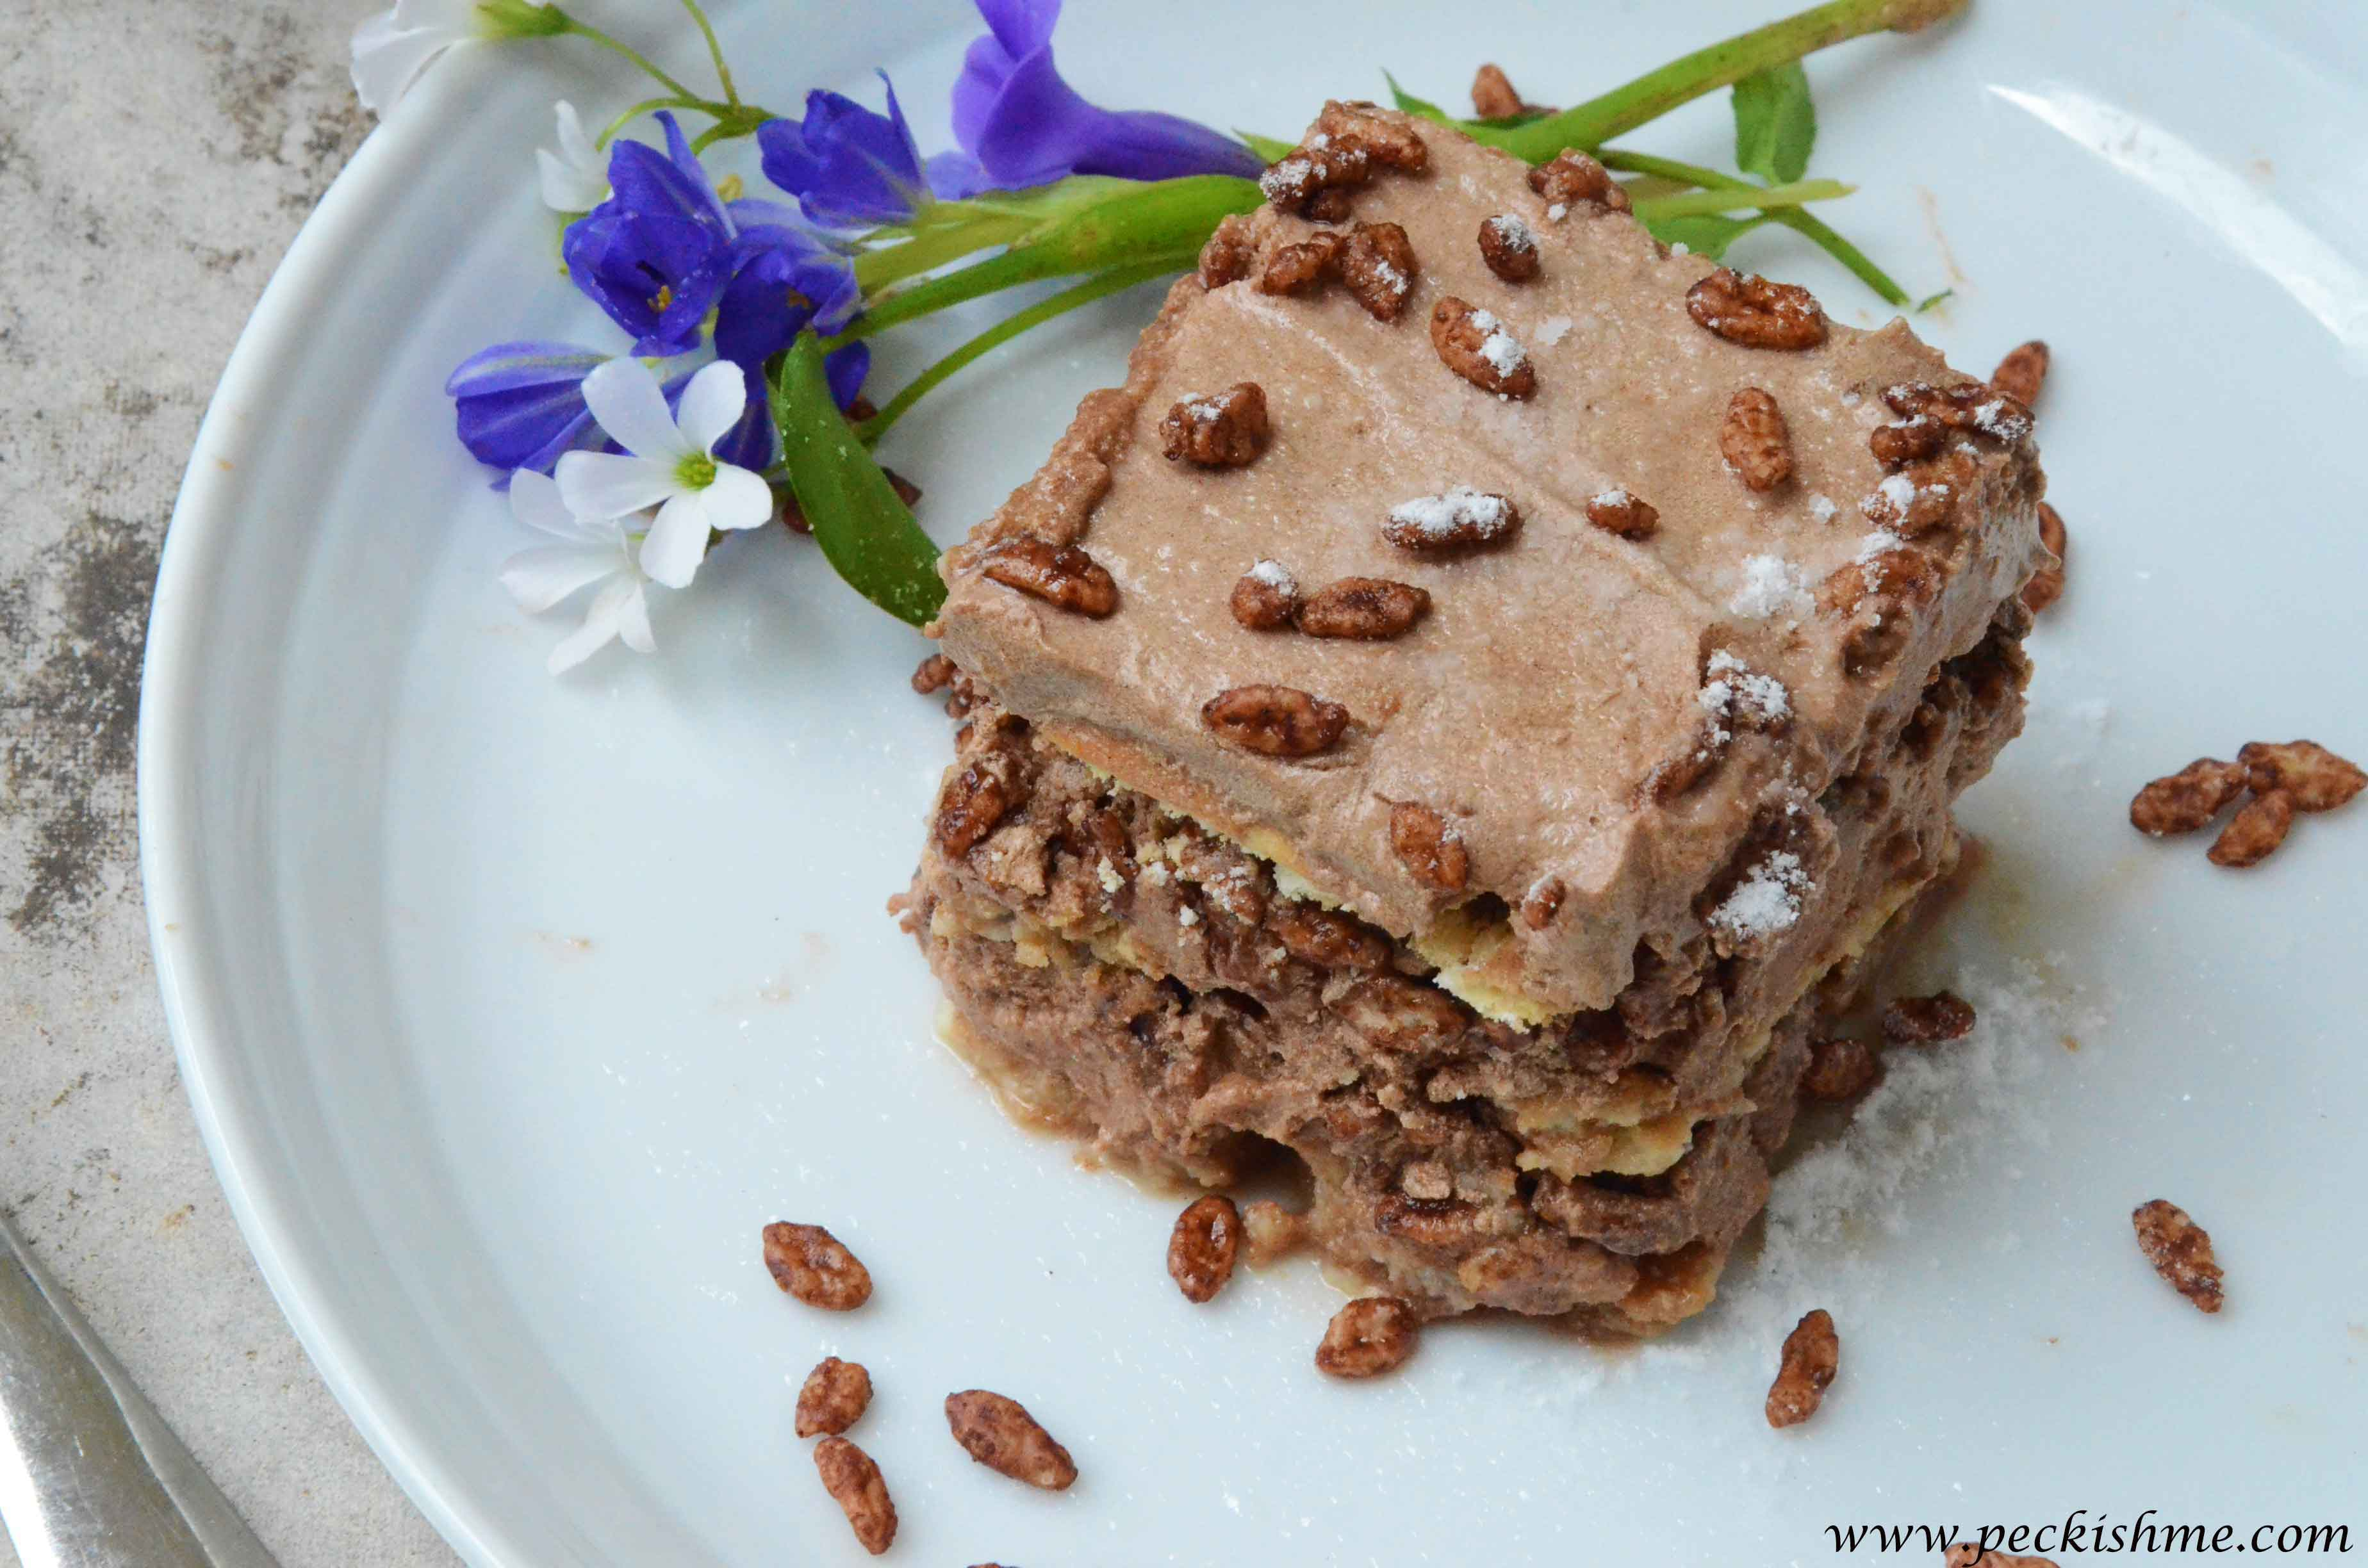 Icing Cake Recipes In Sinhala: Sri Lankan Chocolate Biscuit Pudding